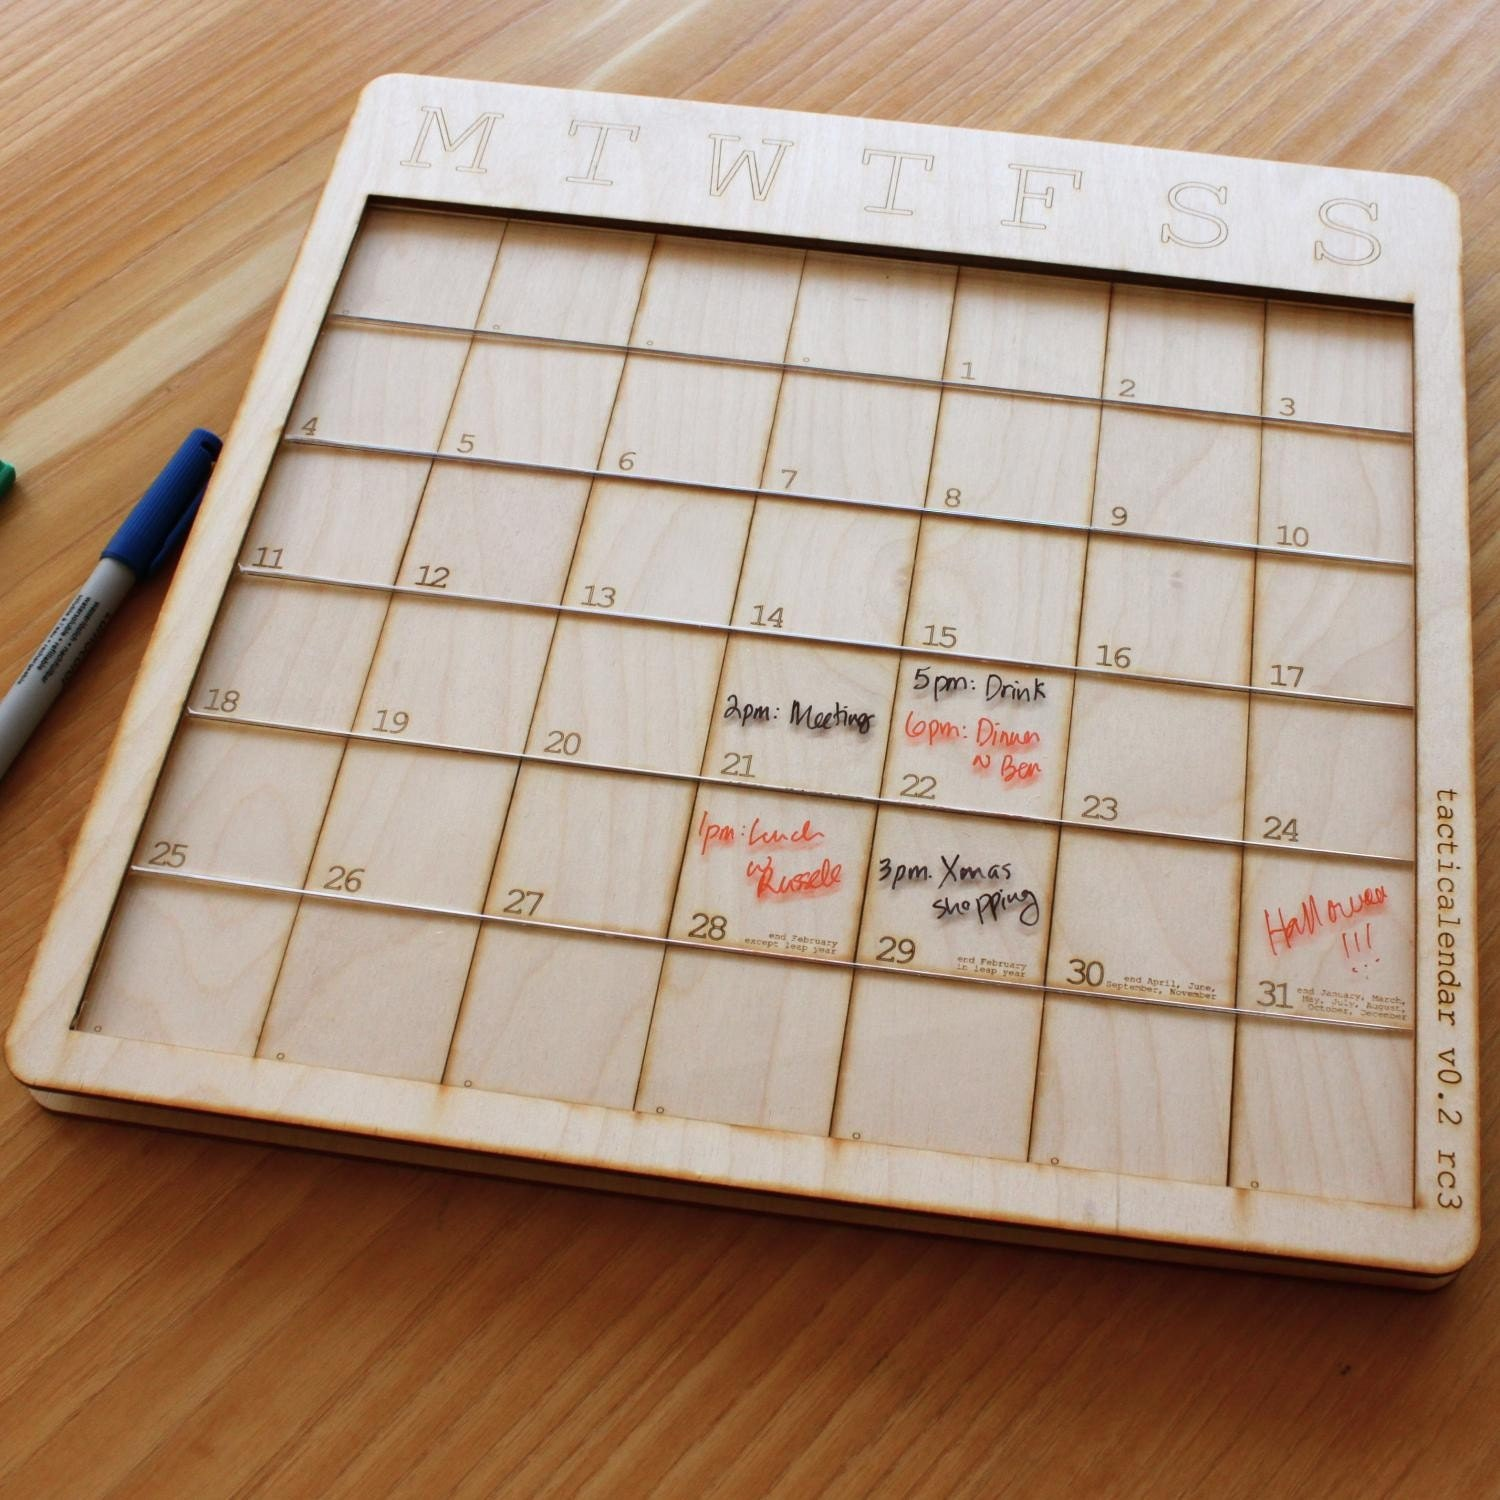 Perpetual Horizon Erasable Calendar - for 2011 and beyond